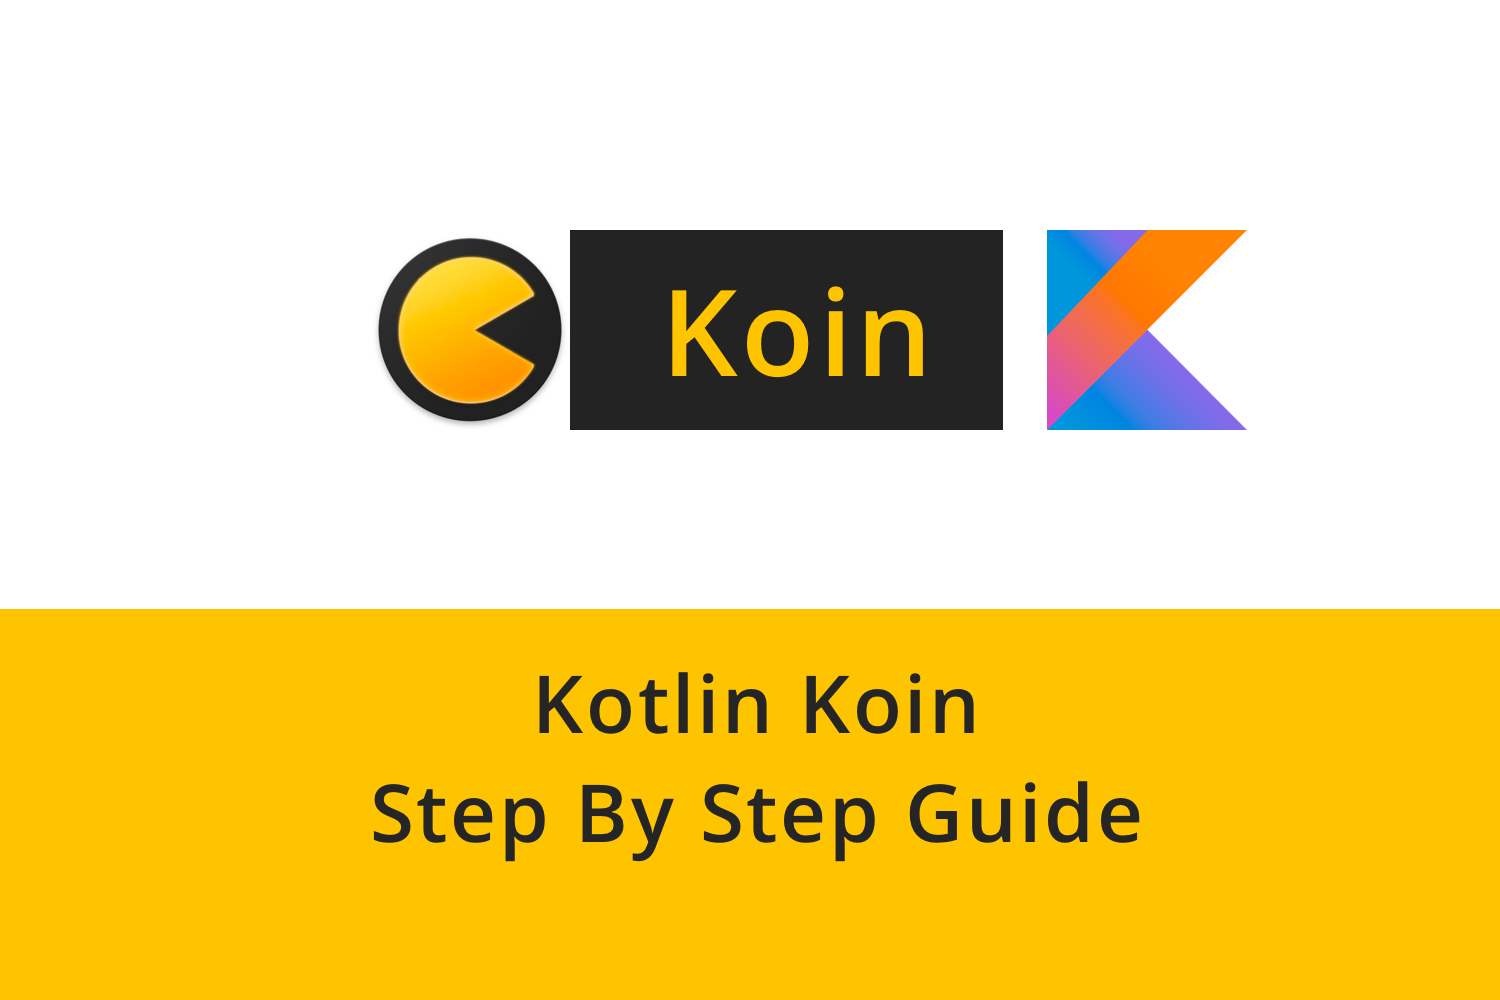 Kotlin Koin - Android Tutorial for Beginners - Step By Step Guide